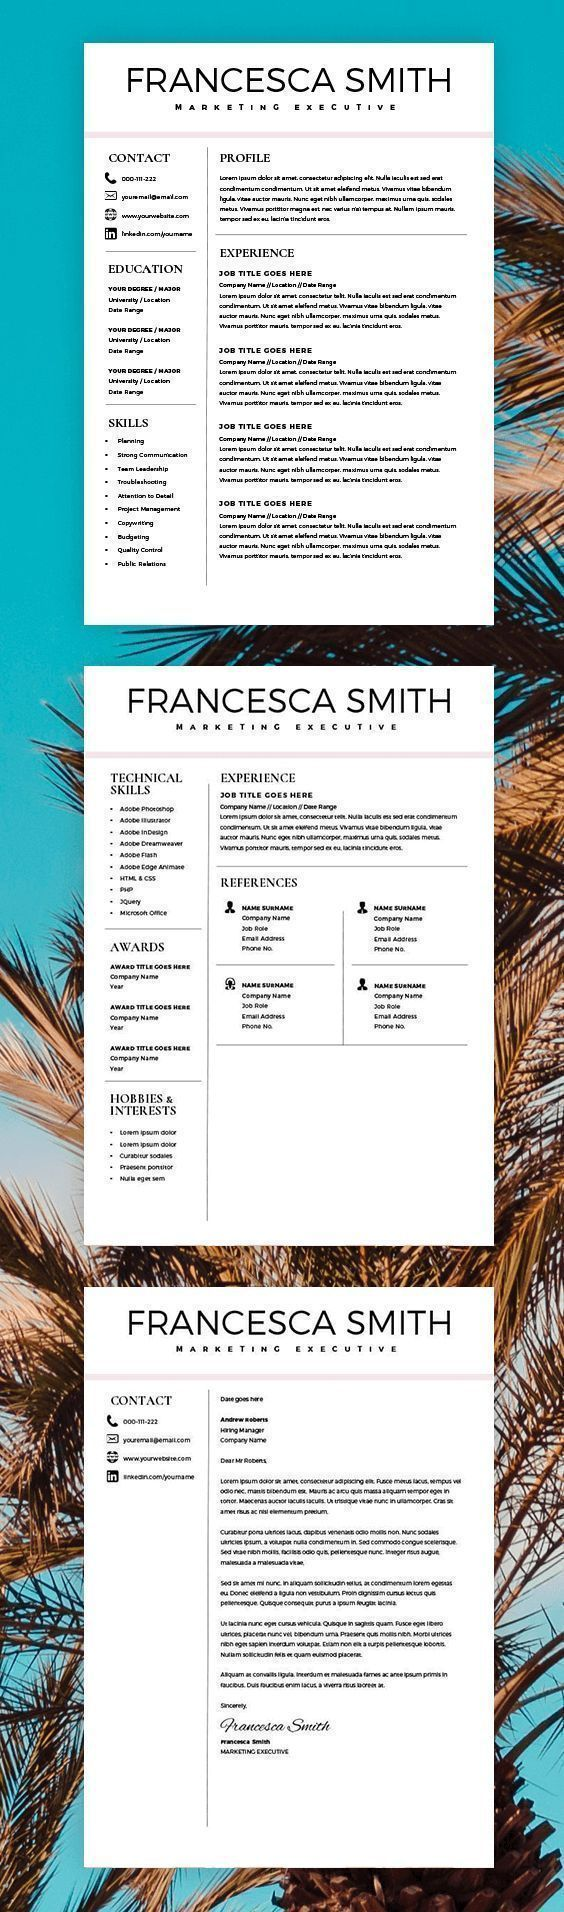 Microsoft Word Resume Template For Mac Feminine Resume  Cv Design  Resume Download  Ms Word Resume For .